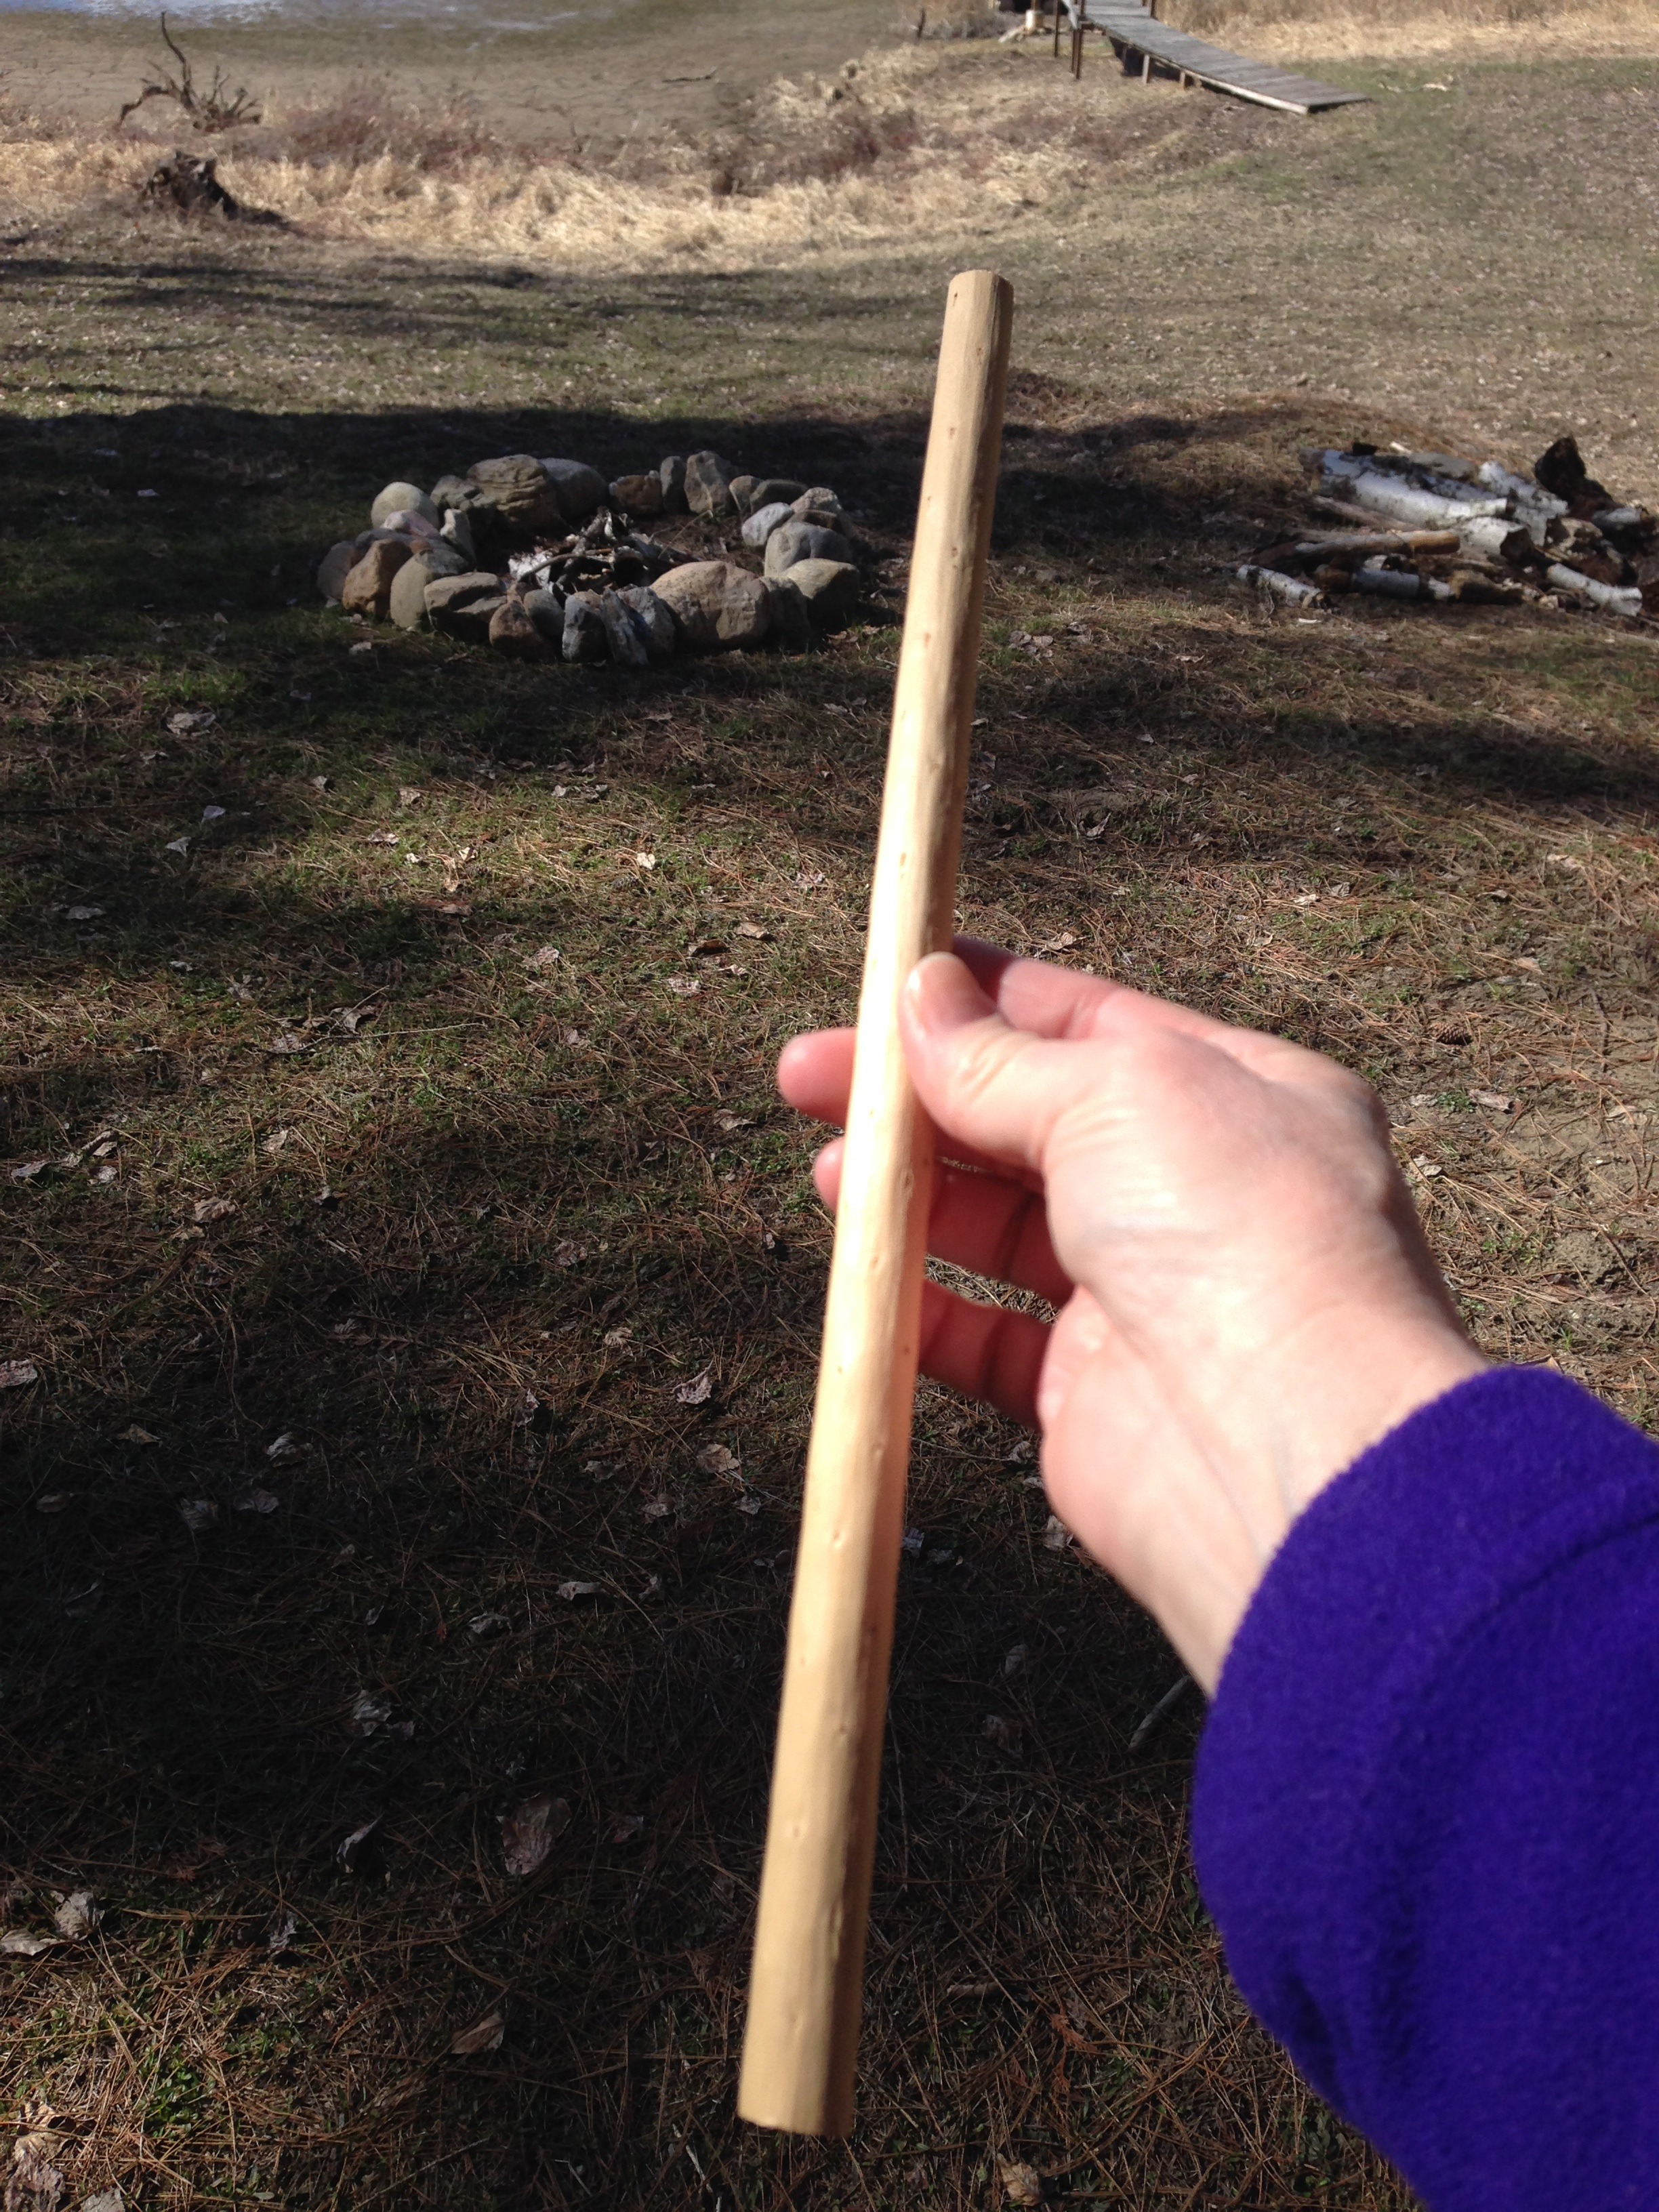 Sometimes Paul splits a log and a perfect dowel shaped center pops out. It's like the tree's inner sapling.